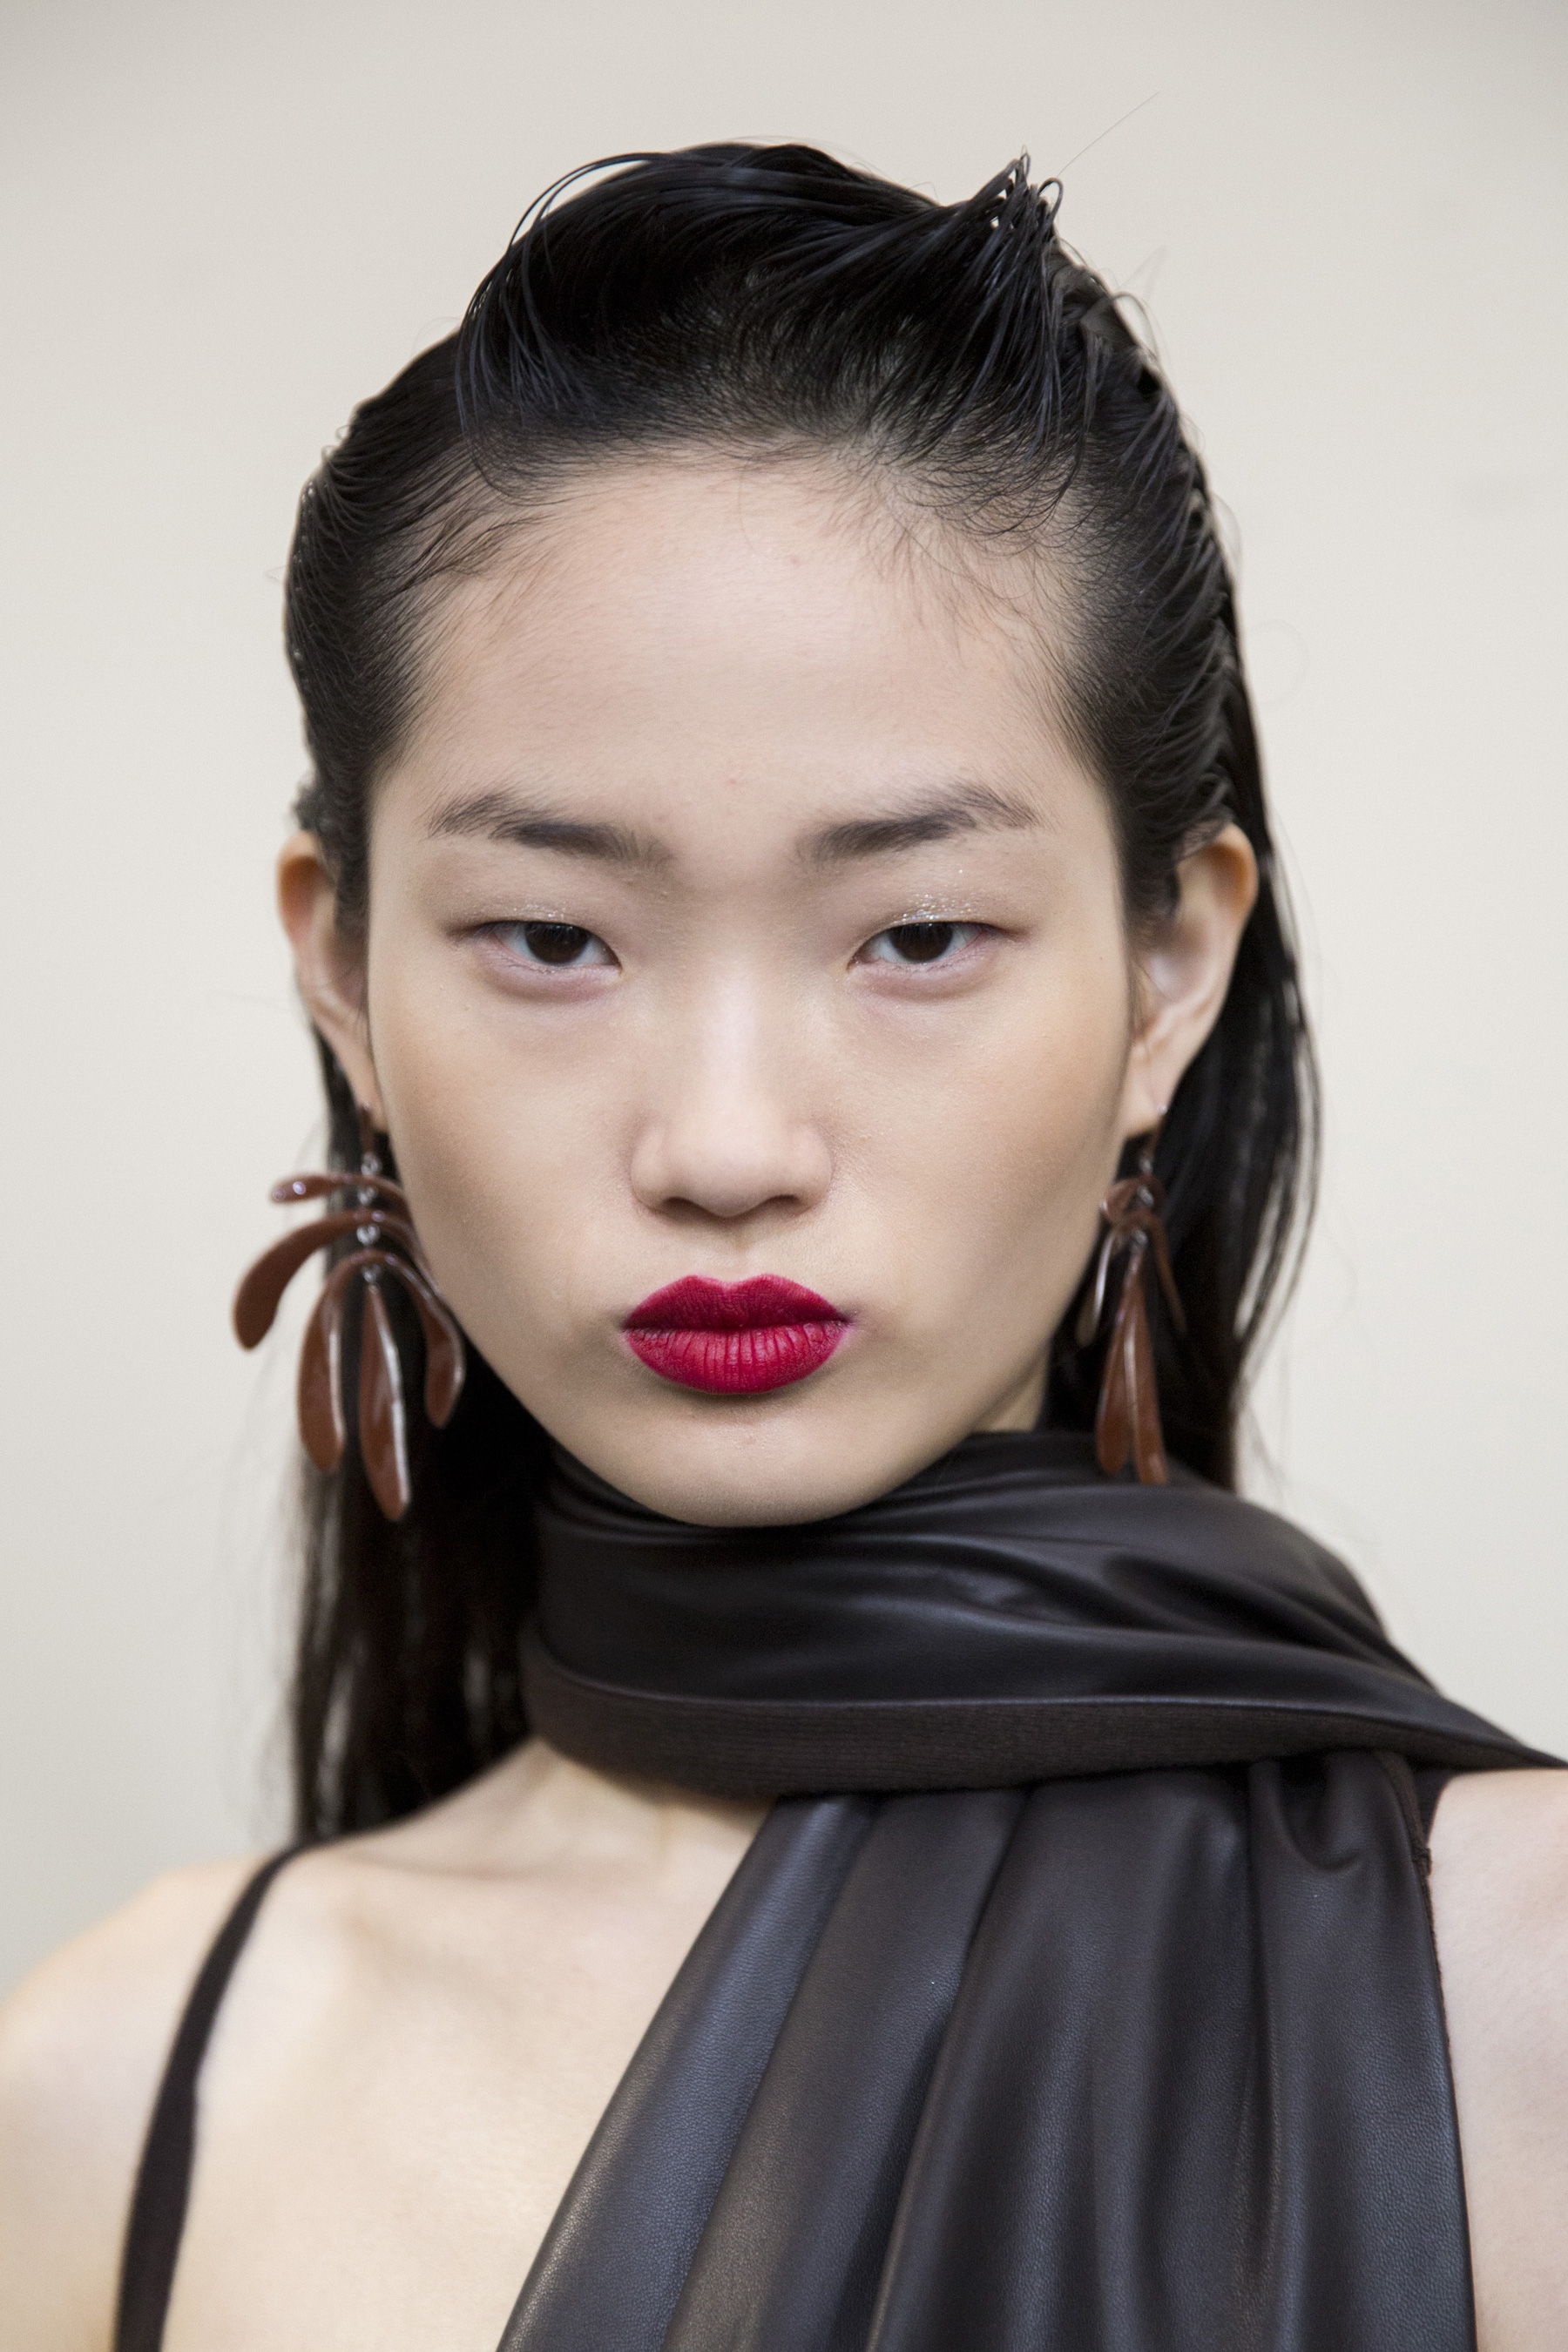 The Best of Beauty Photos Milan Fashion Week Fall 2019